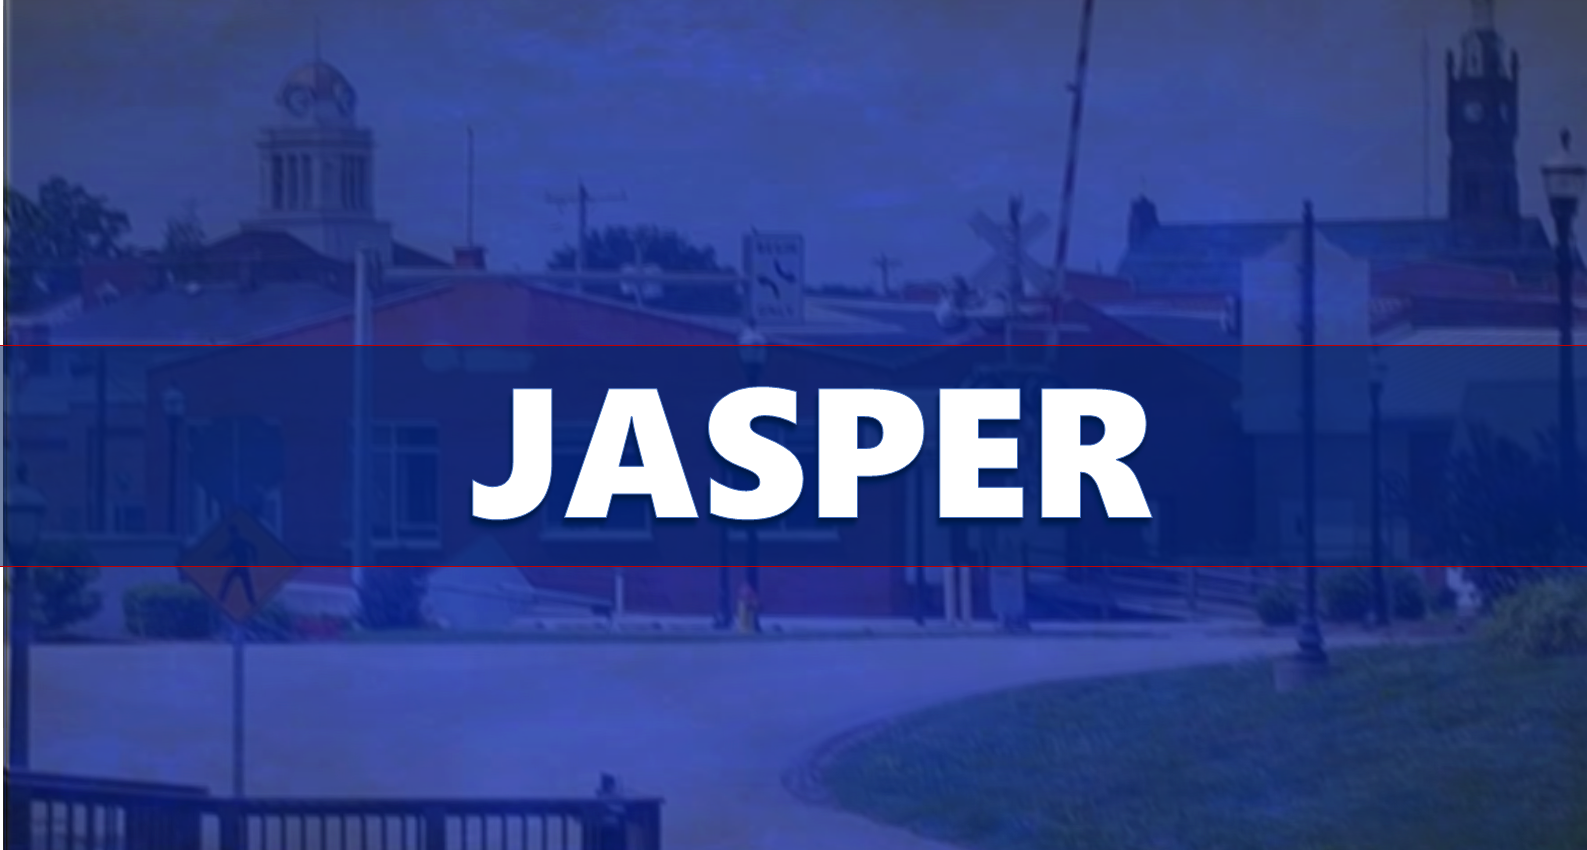 Jasper Ranked Among Safest Places to Live in Indiana, According to National Home Security Company